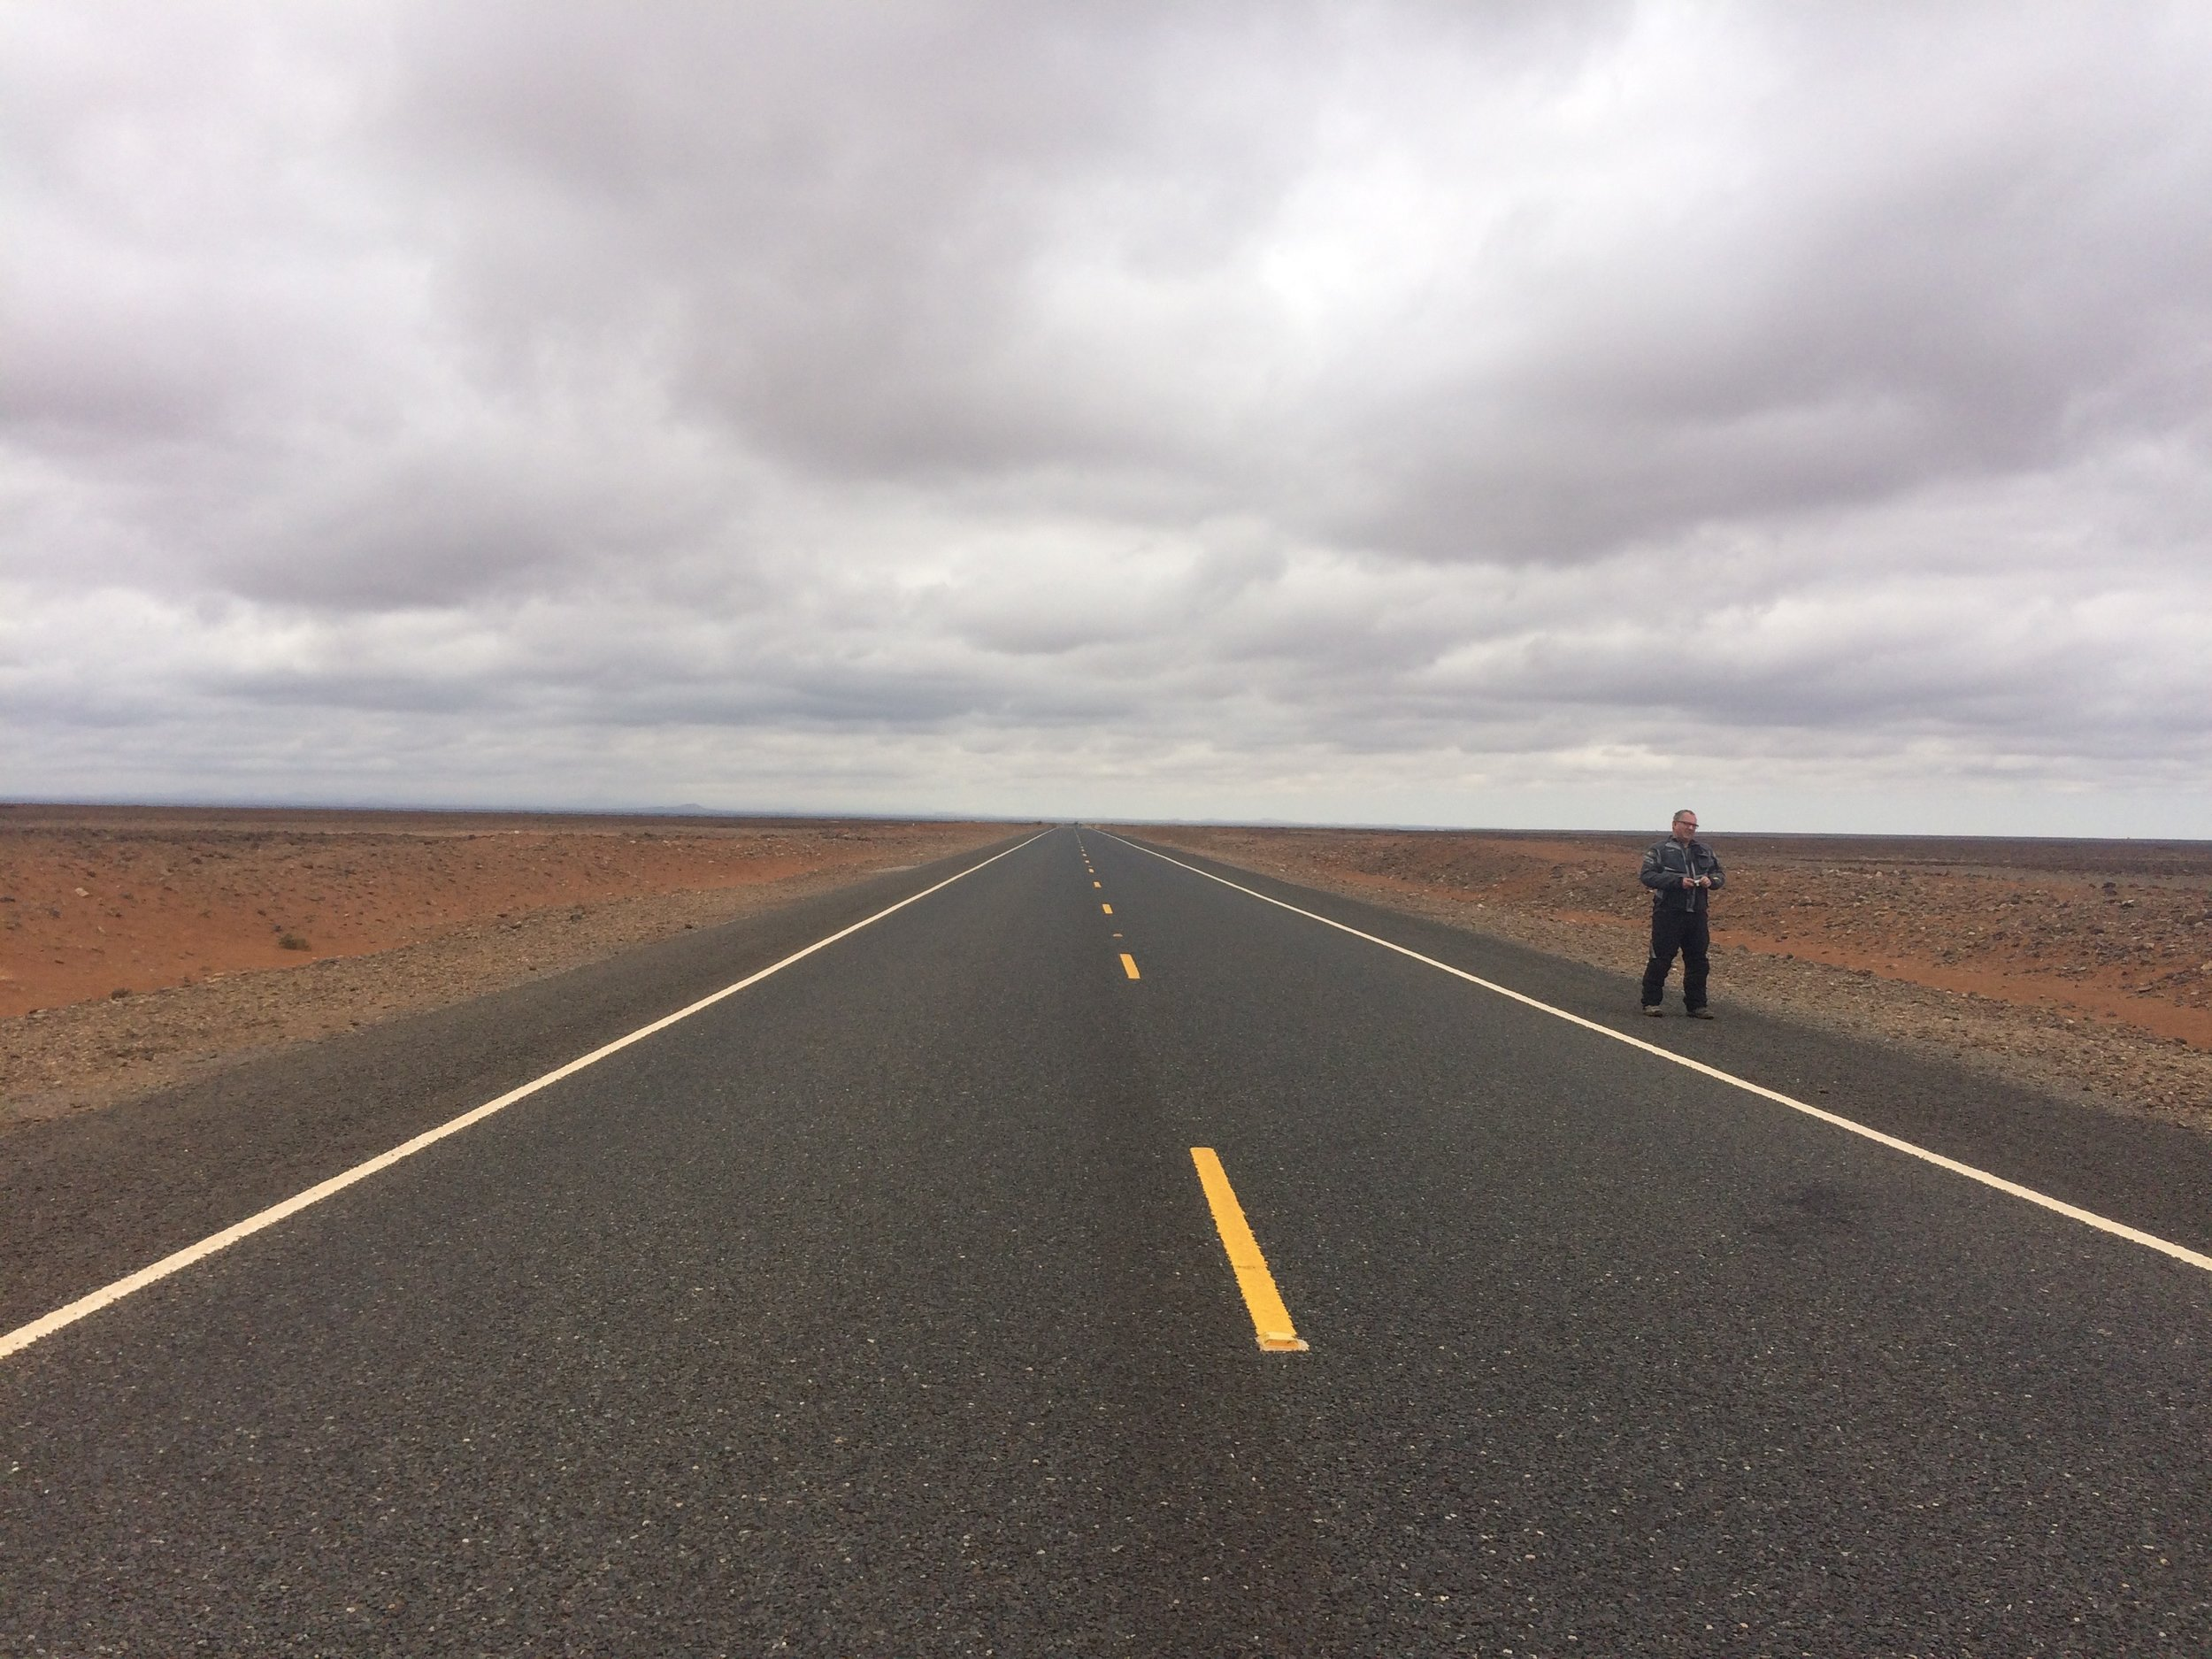 And now ... the beautiful Chinese tarmac Trans-African road